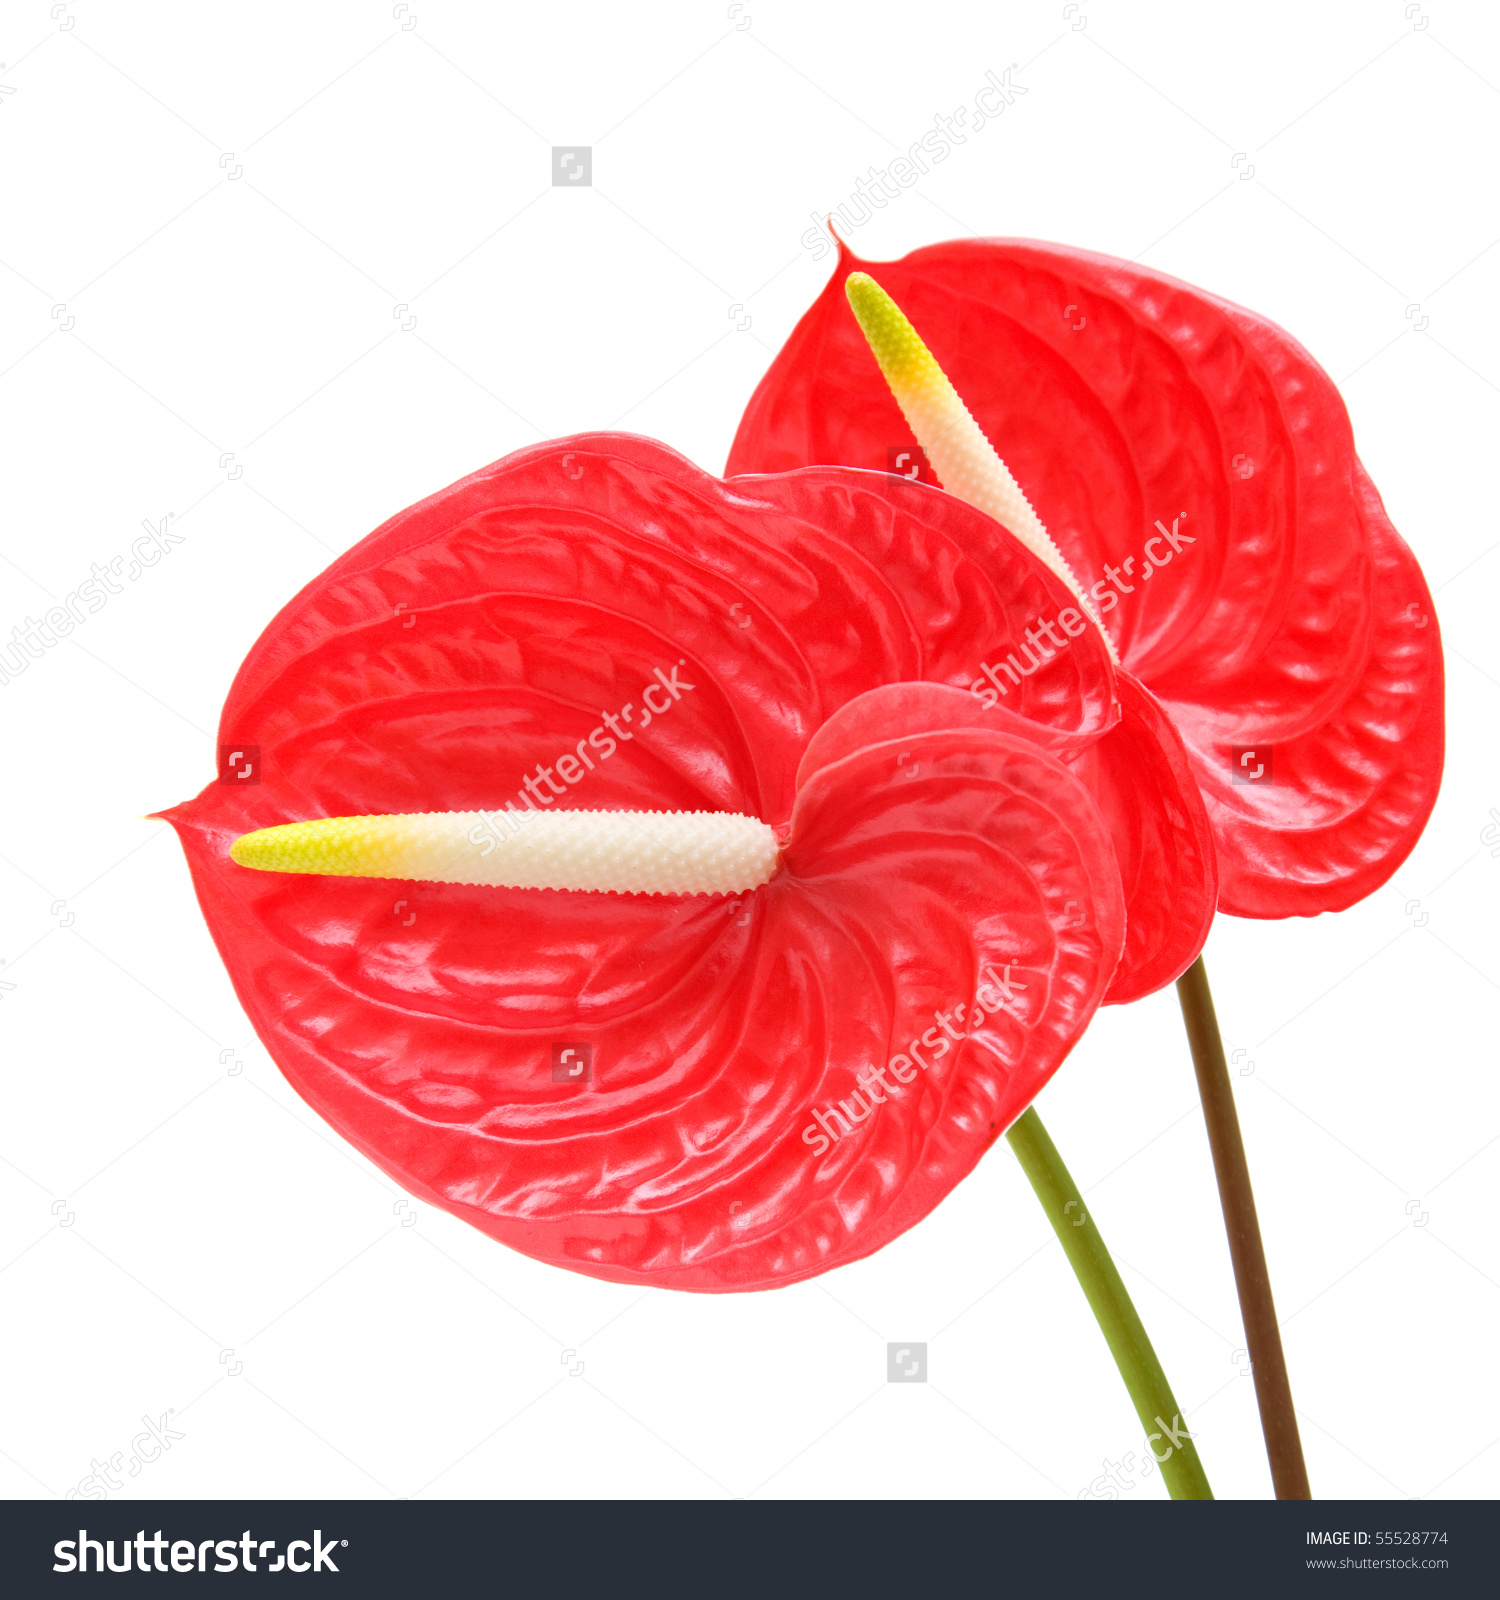 Red Anthurium Flamingo Flower Boy Flower Stock Photo 55528774.